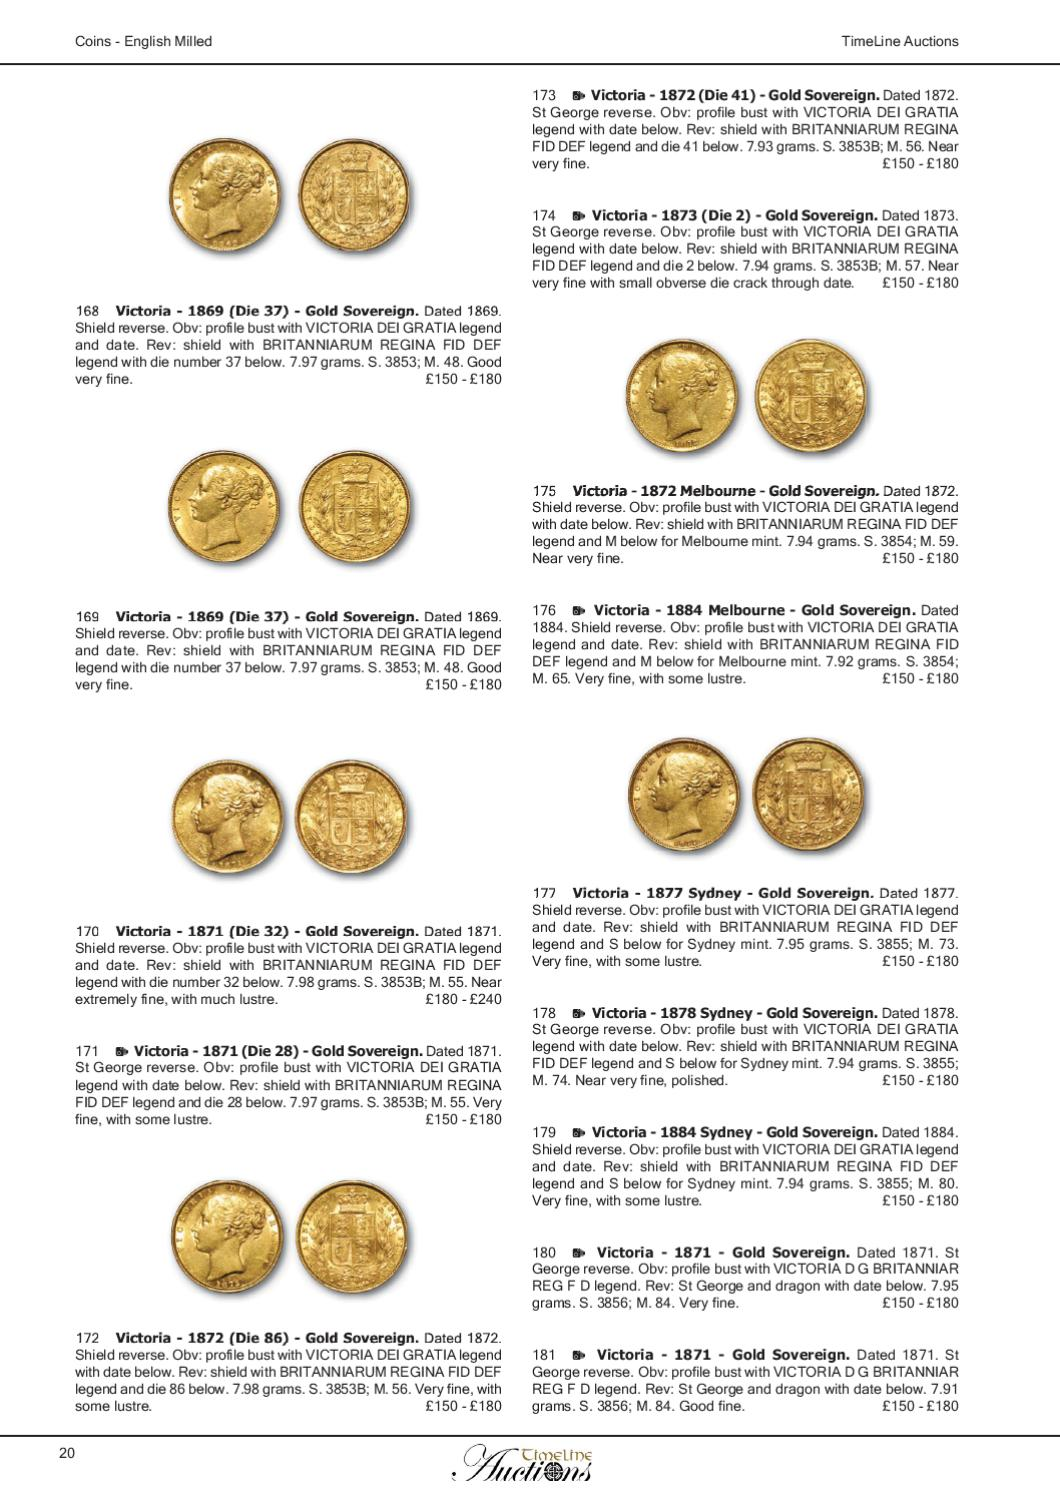 Auction Catalogue 18 March 2011 - Coins by Daniel Riddick